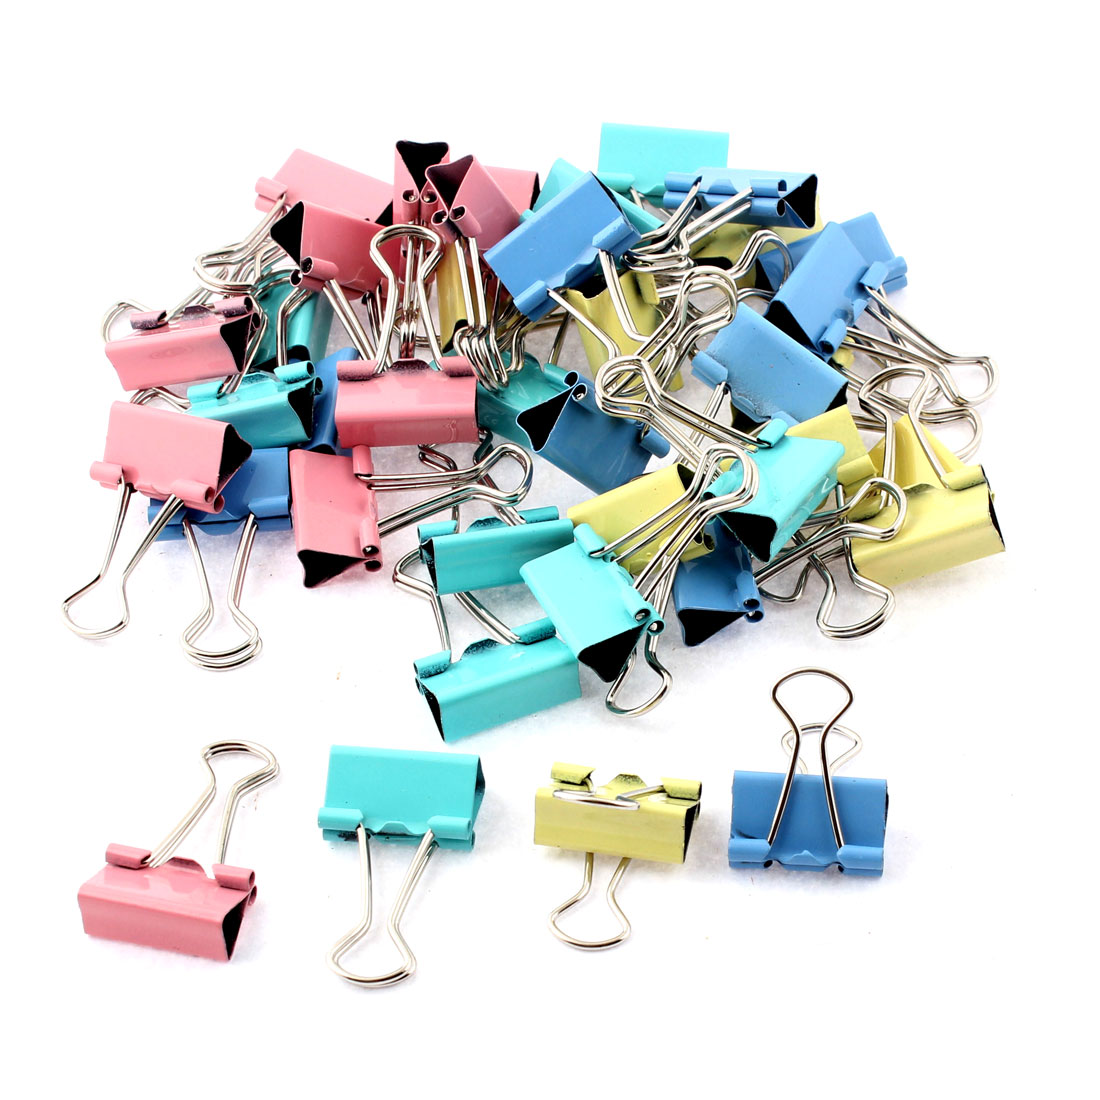 Home Office     Document Paper File Binder Clips Clamp Holder 40pcs - image 2 of 2